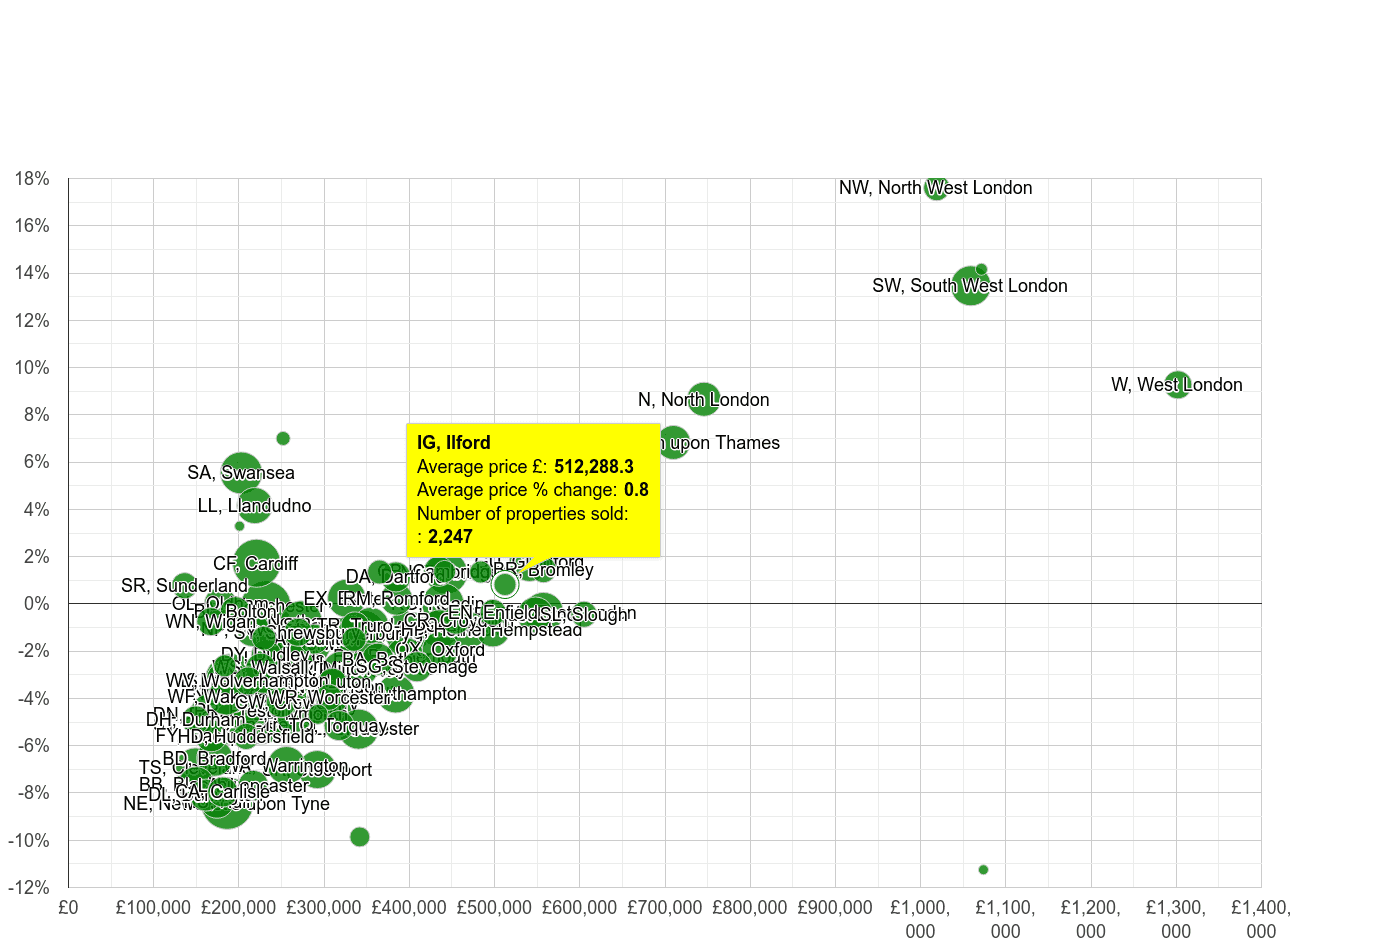 Ilford house prices compared to other areas